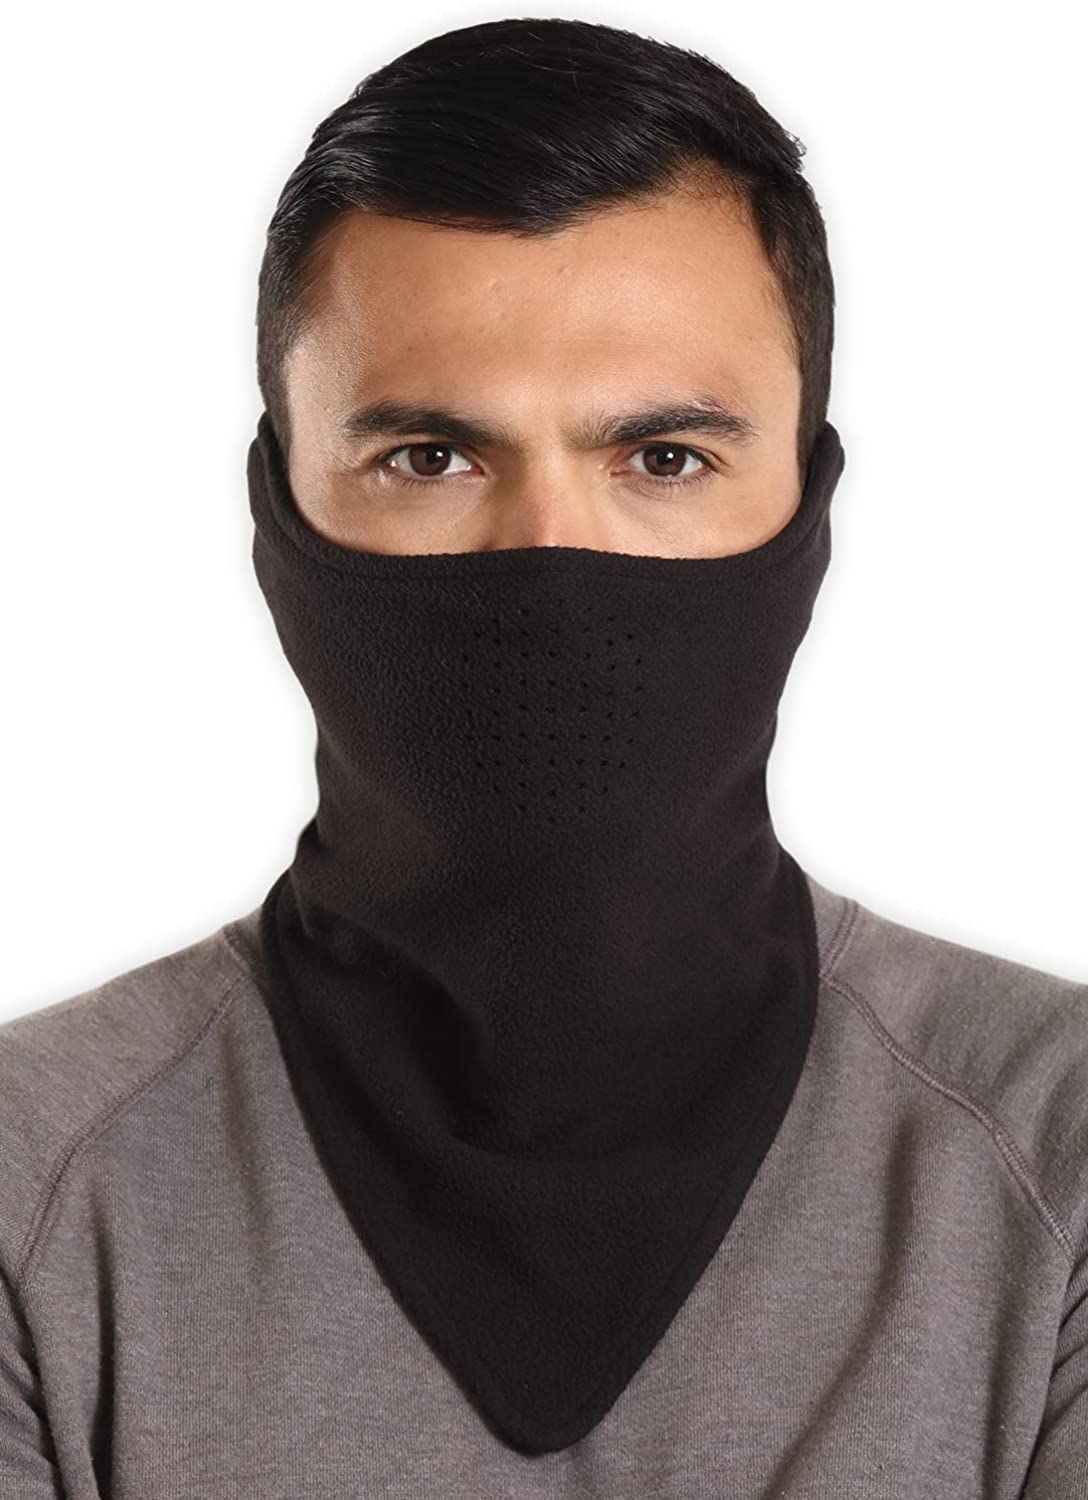 Ski Use This Half Balaclava for Snowboarding Half Face Mask for Cold Winter Weather Many Colors Motorcycle.